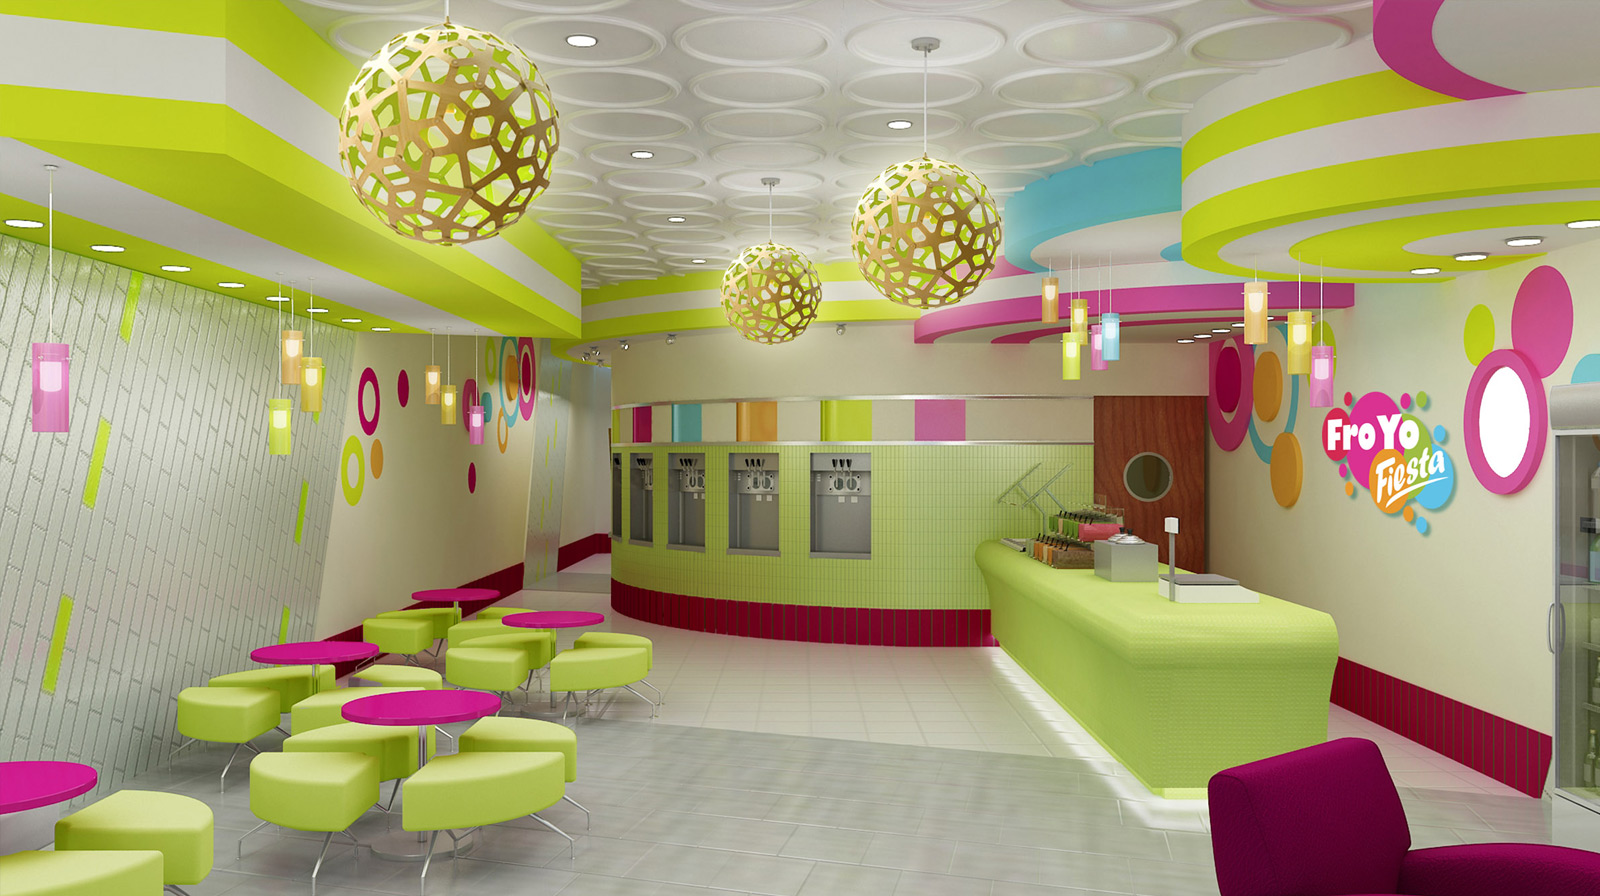 Interior design of yogurt shops mindful design consulting for Indoor design